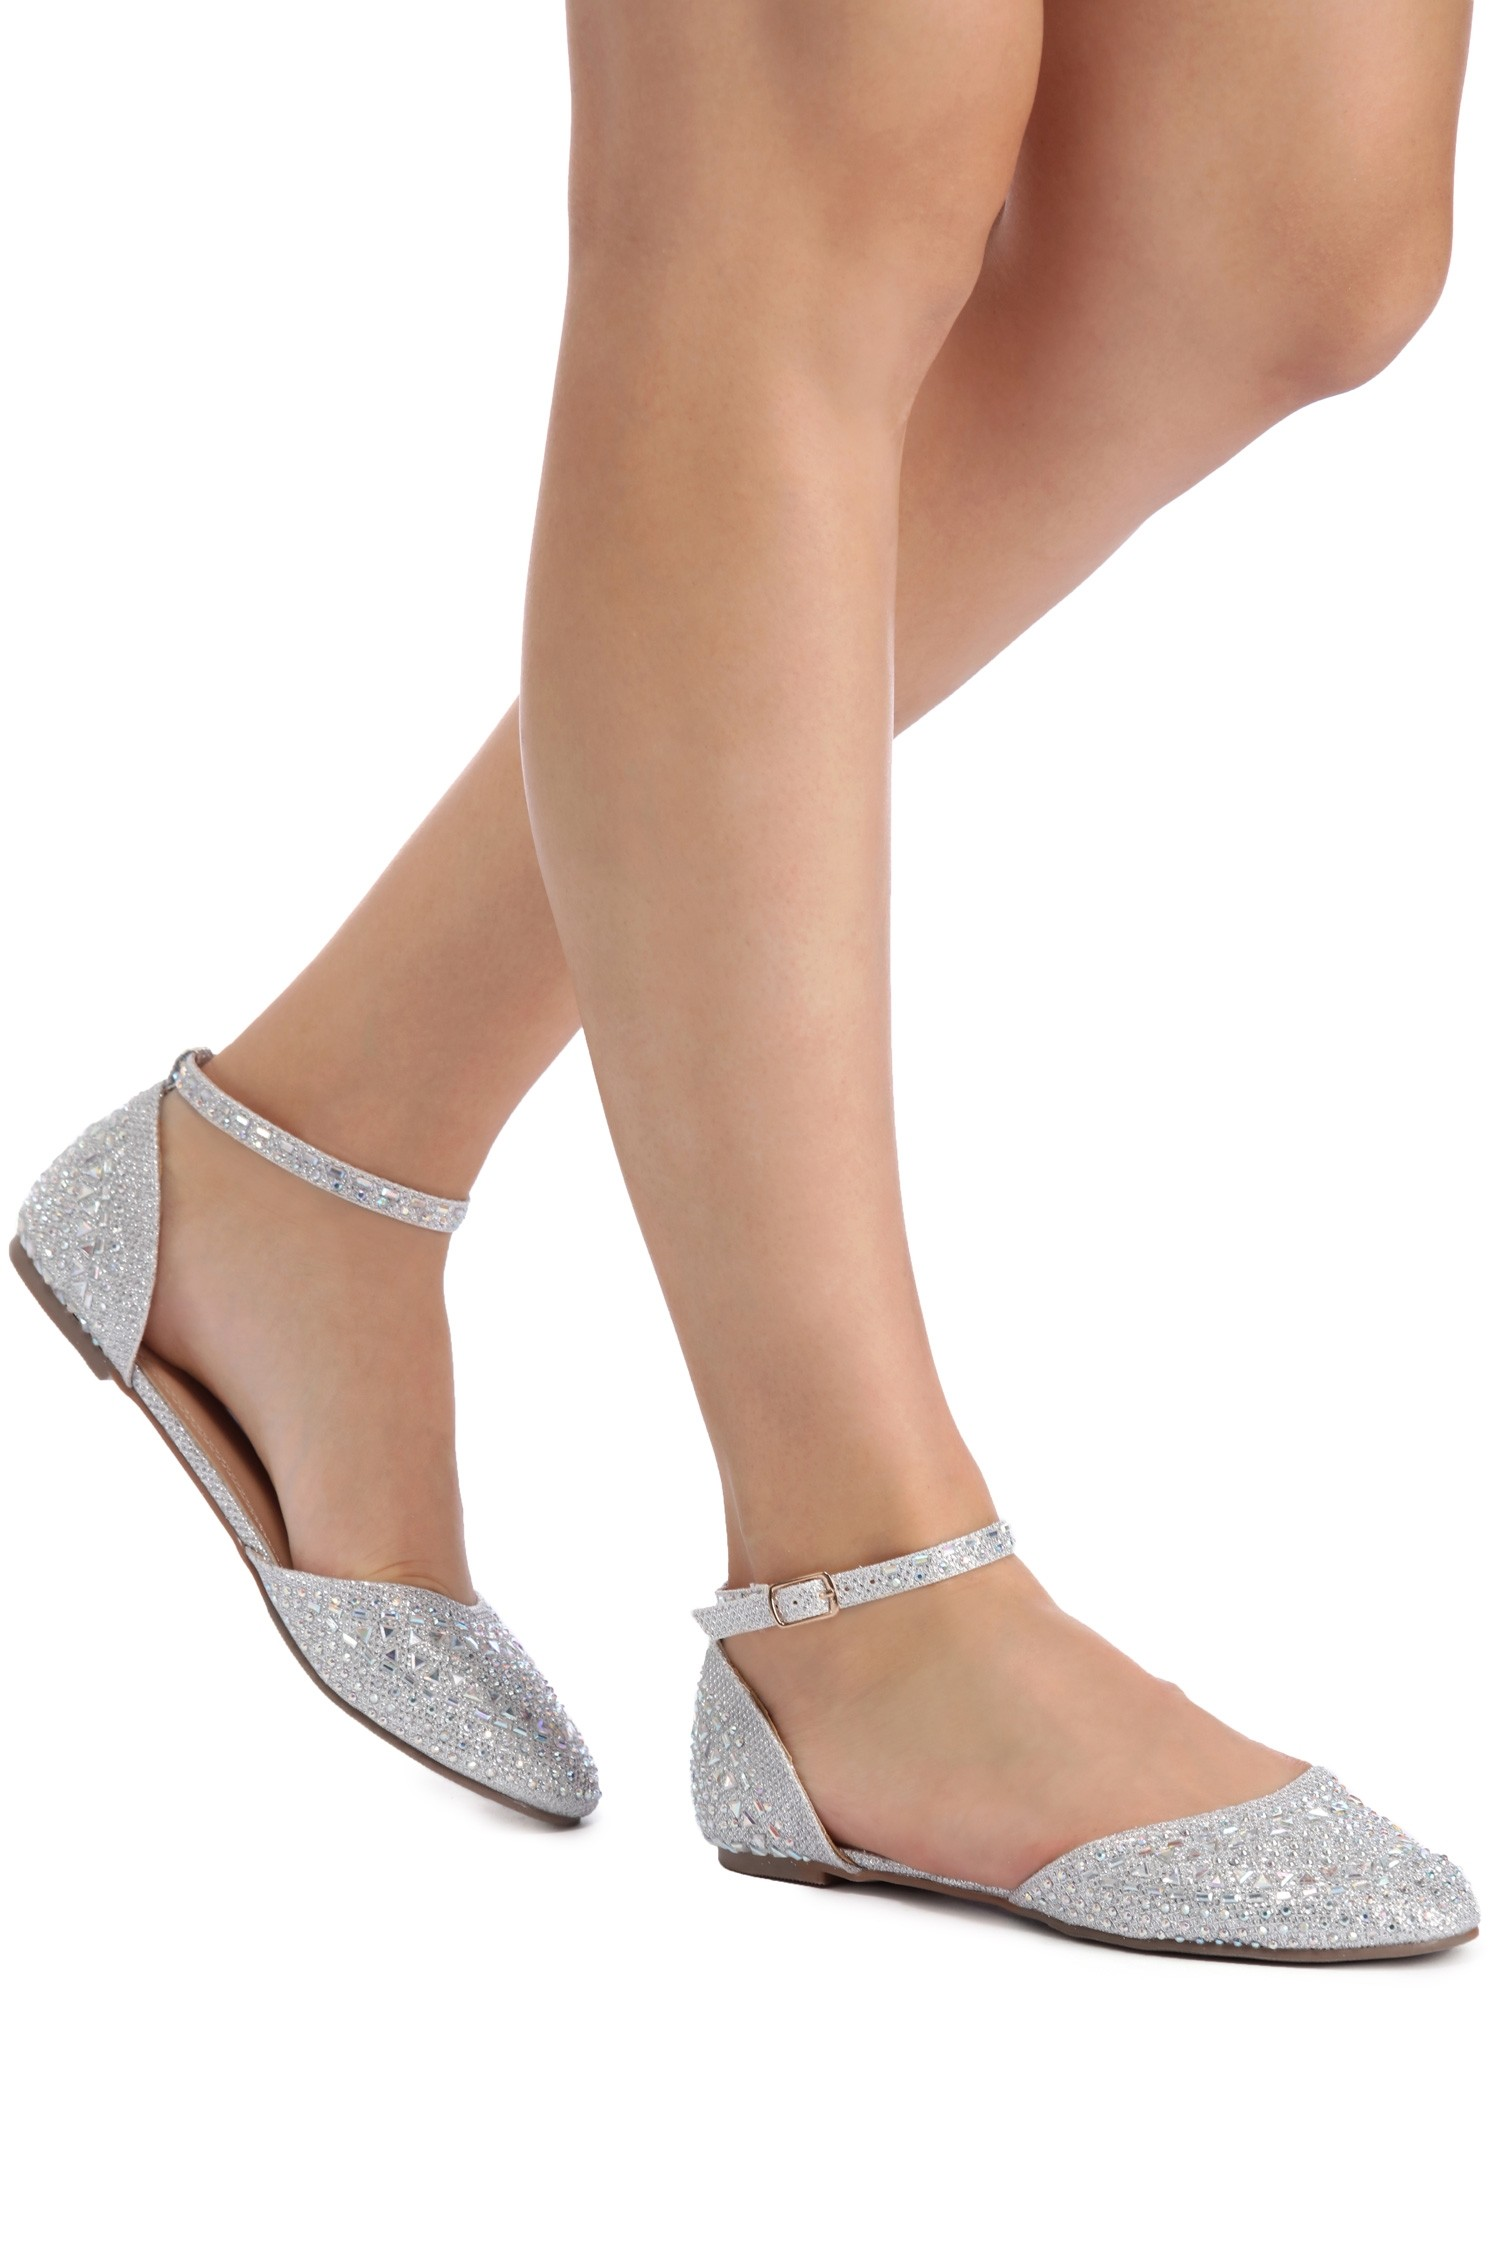 Buy the Beautiful shoes of silver flats for your outing